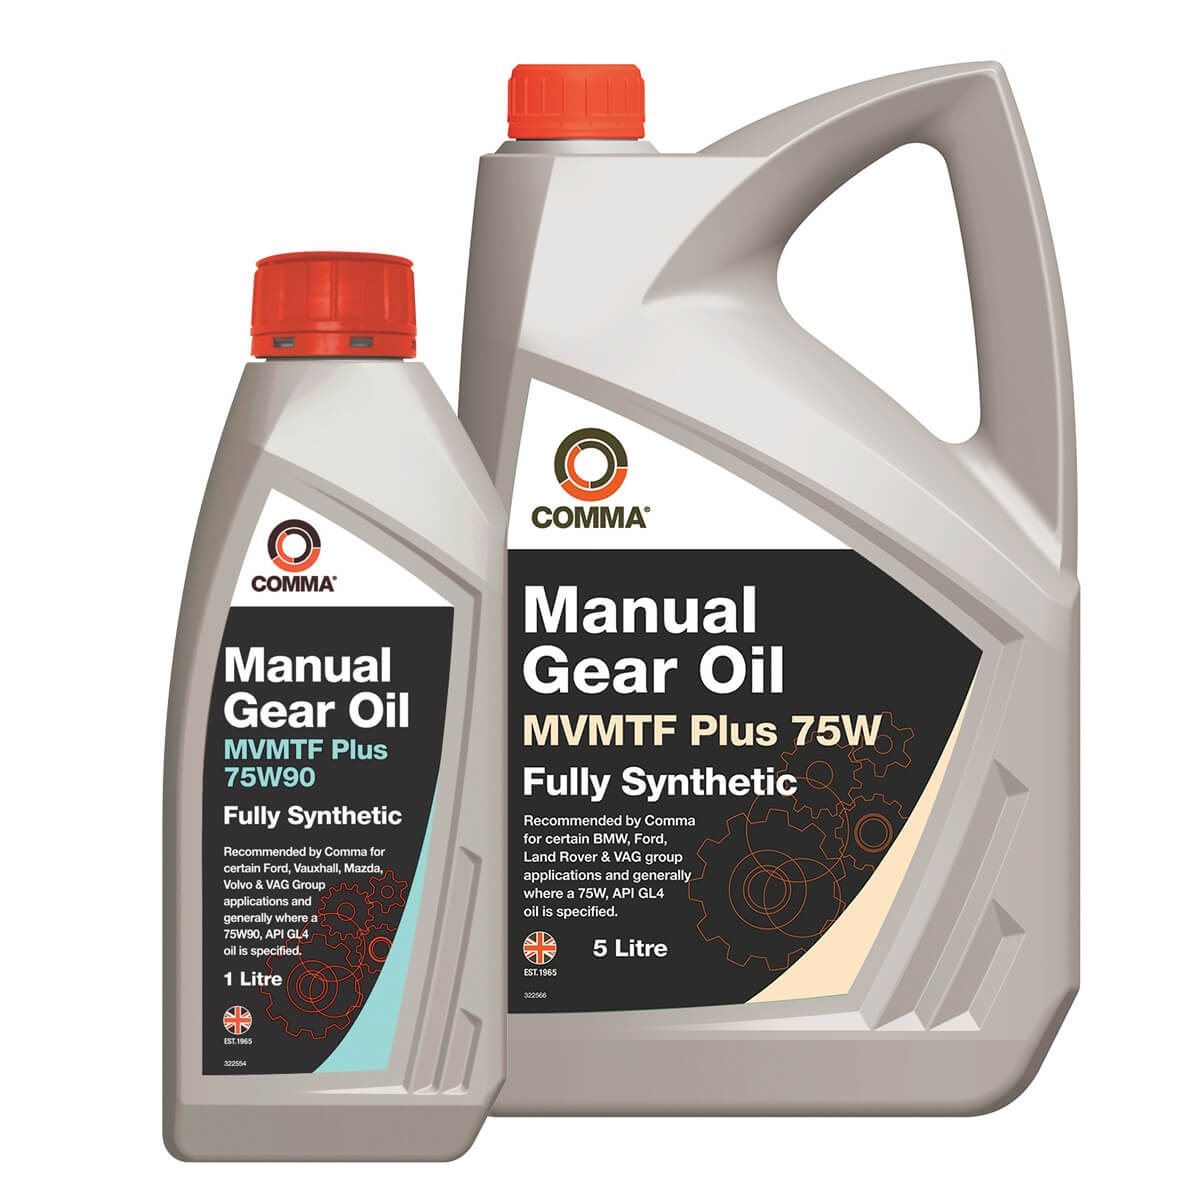 HYUNDAI H-1 Manual Transmission Oil